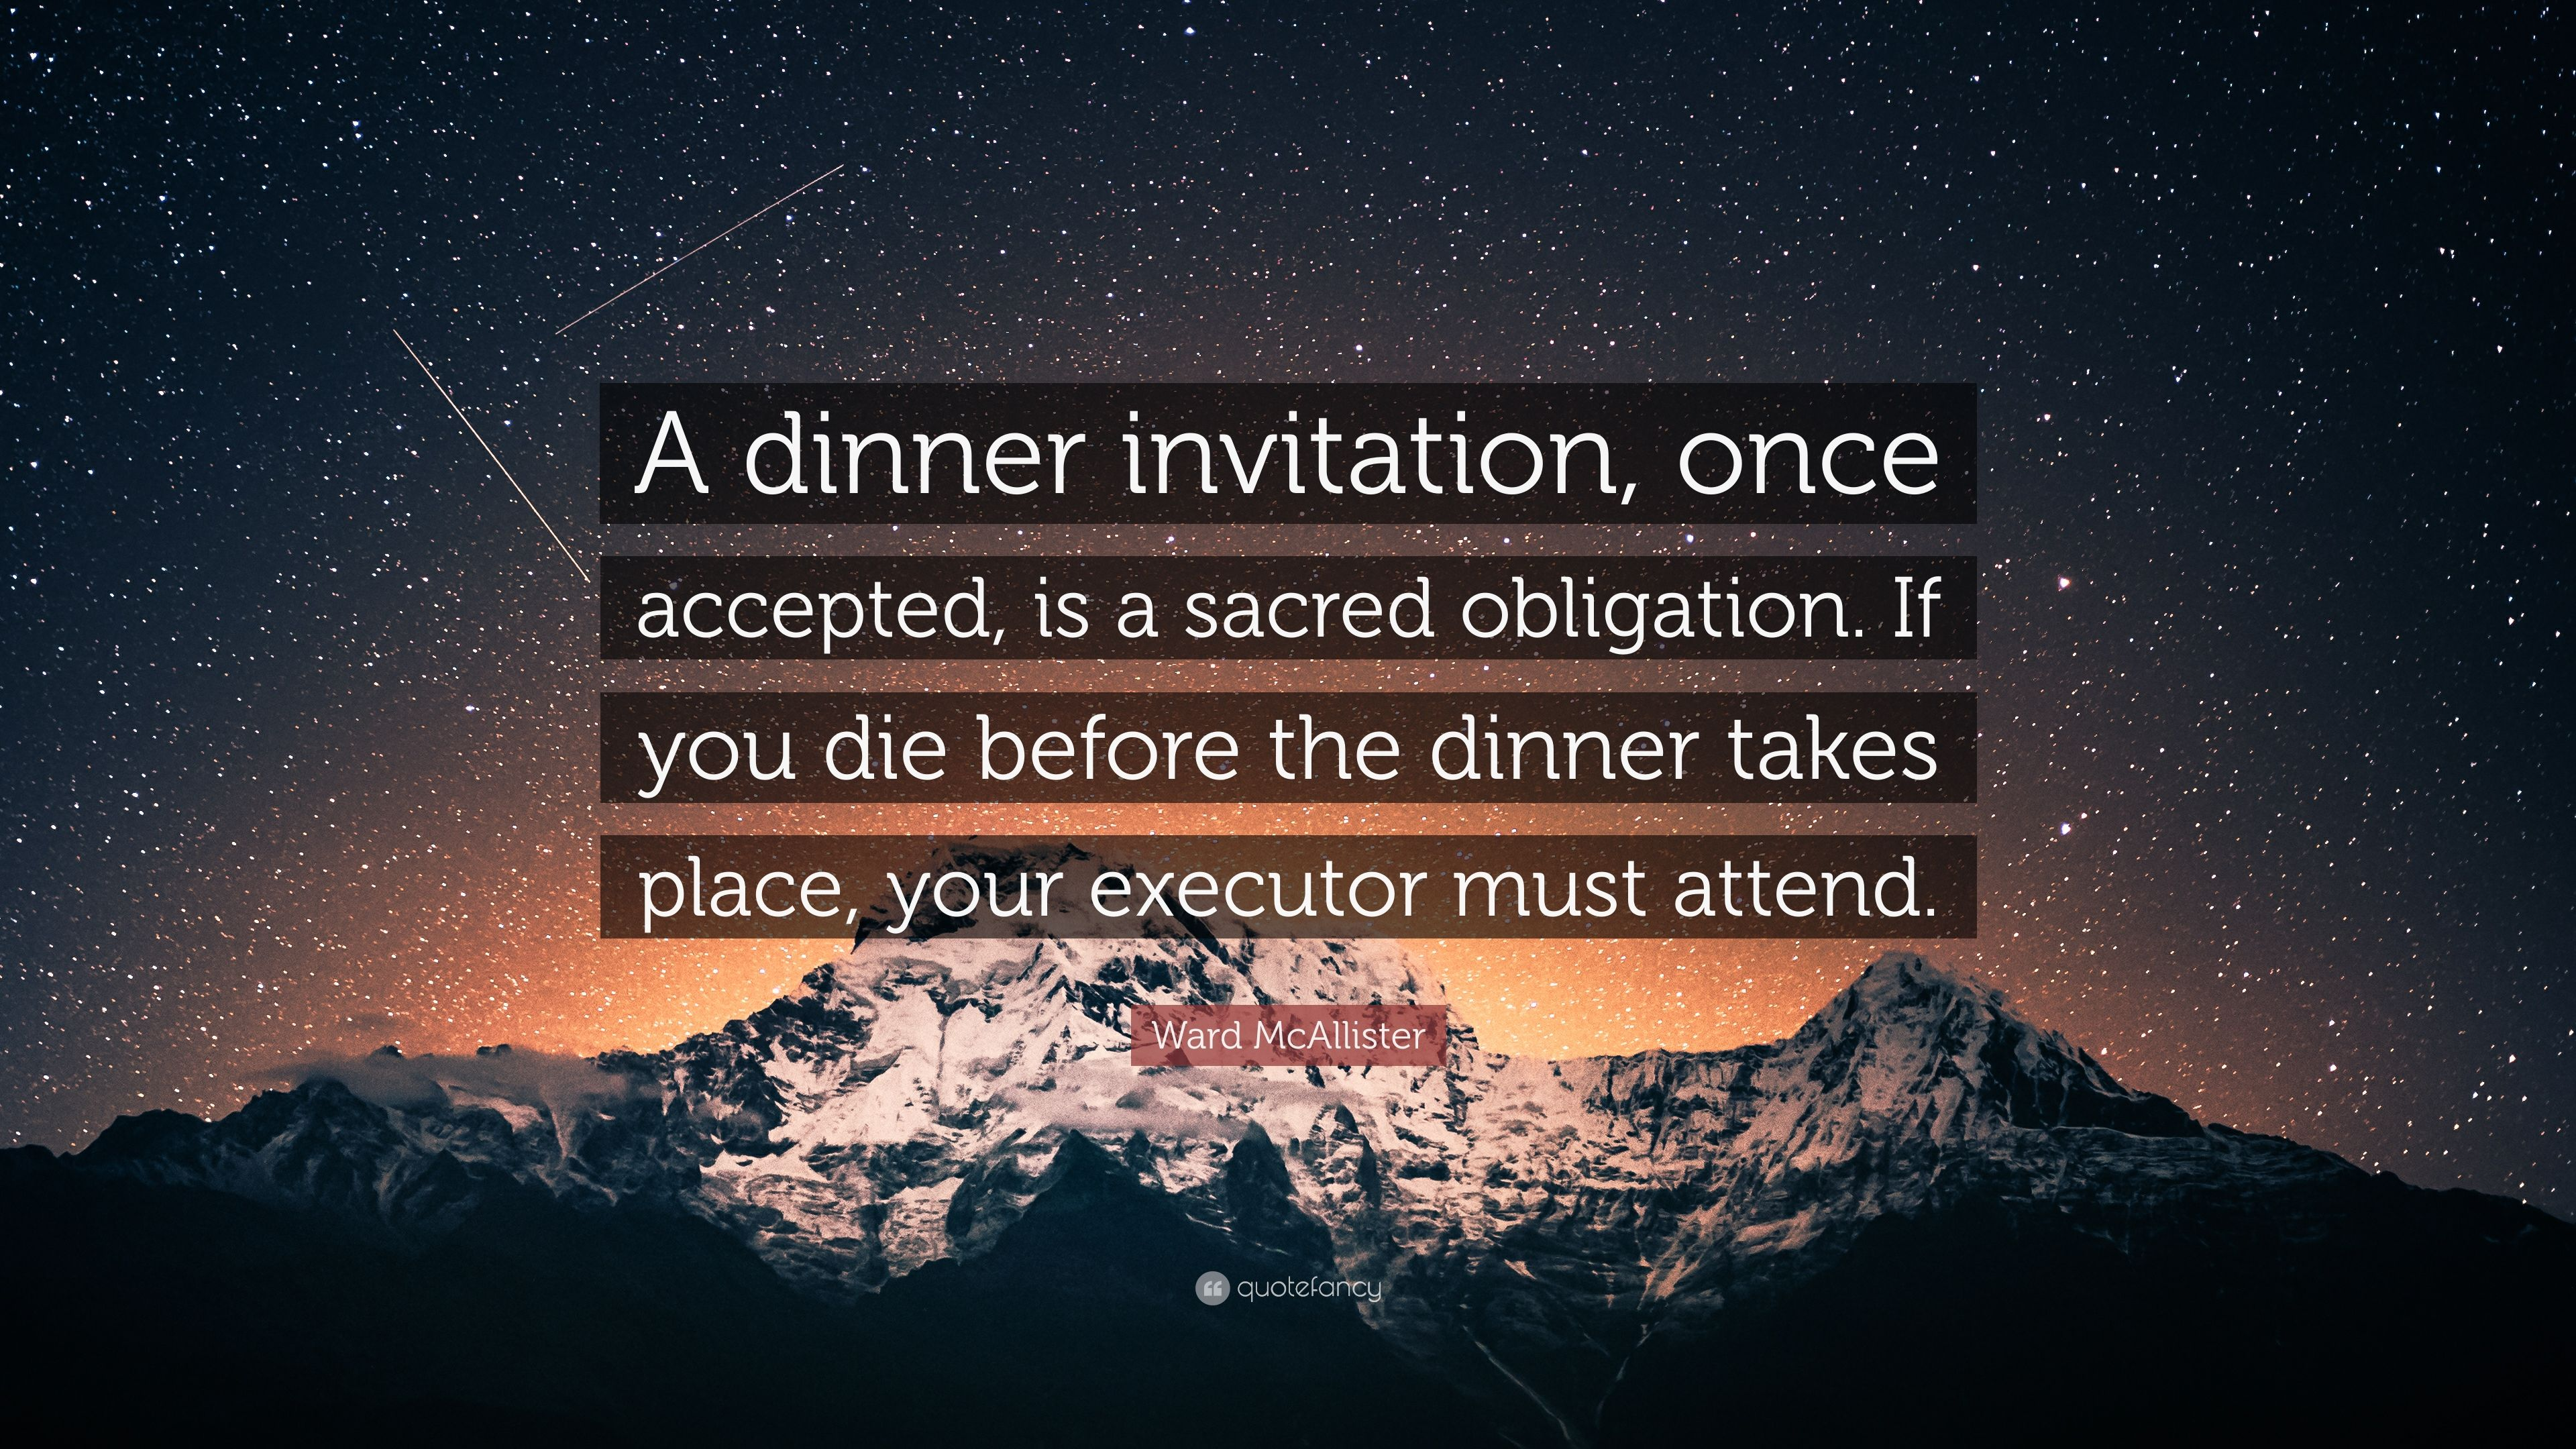 Ward mcallister quote a dinner invitation once accepted is a ward mcallister quote a dinner invitation once accepted is a sacred obligation stopboris Choice Image